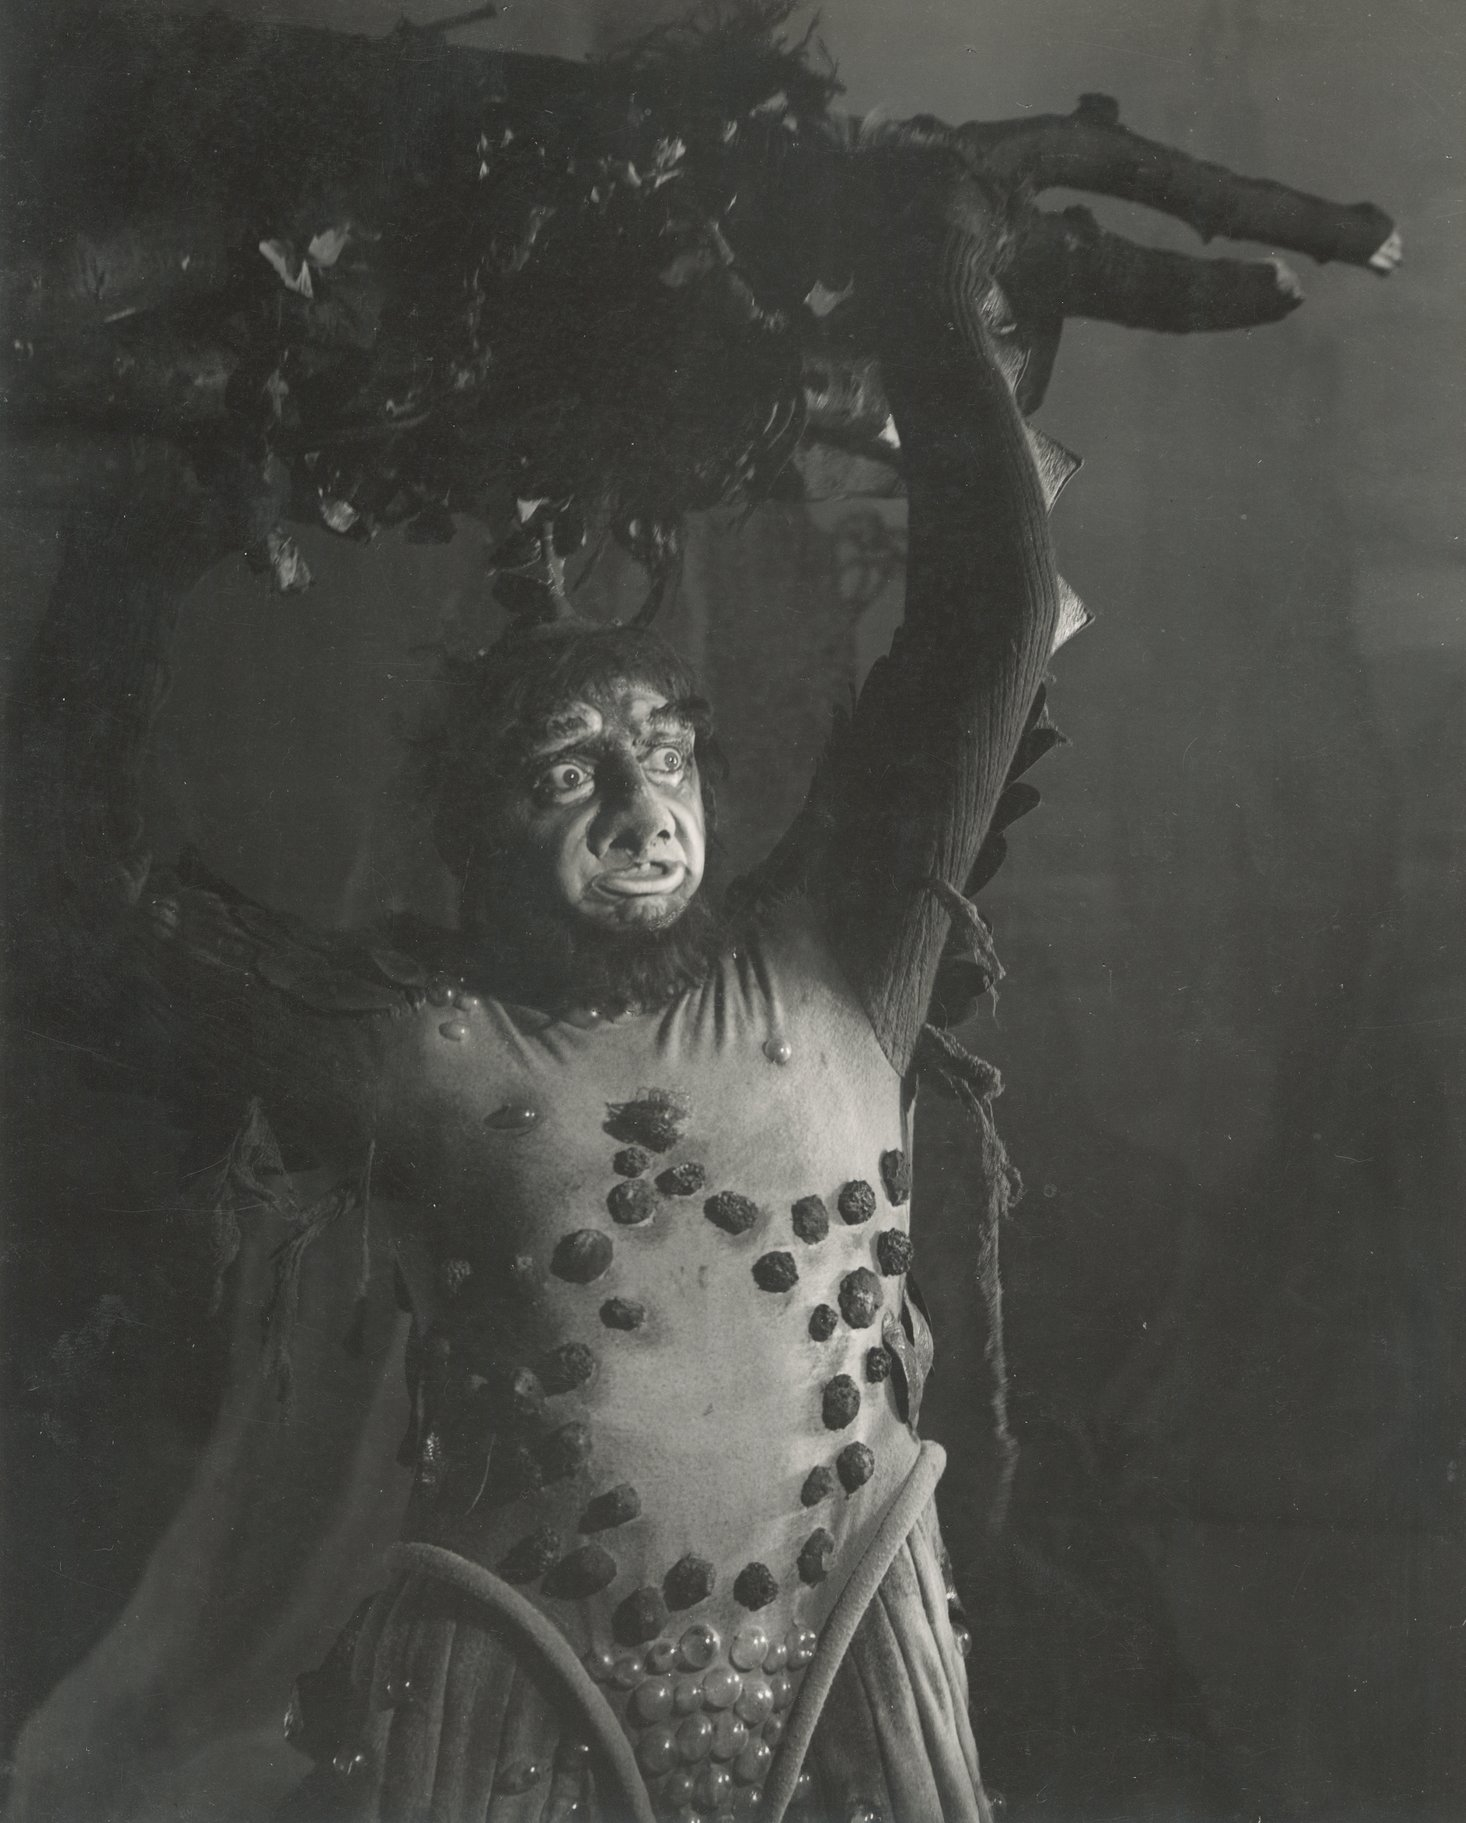 Hugh Griffith as Caliban.